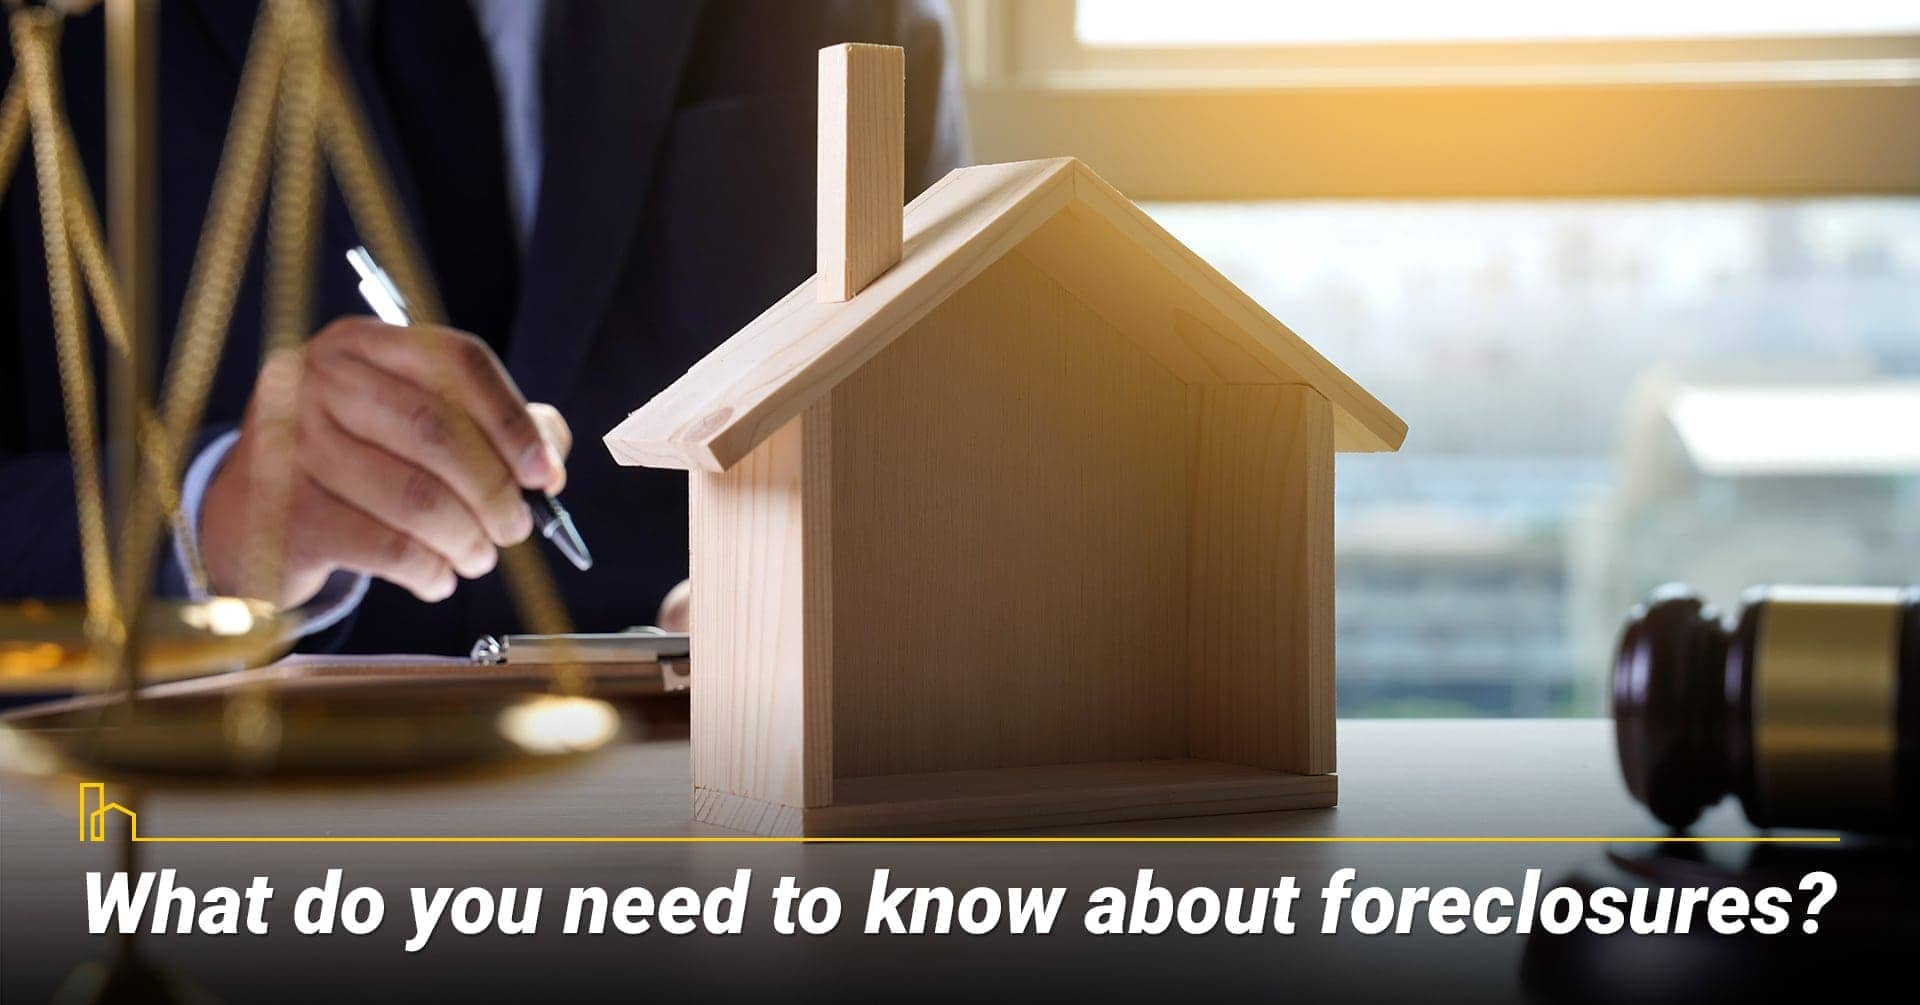 What do you need to know about foreclosures? Foreclosure is a lengthy process